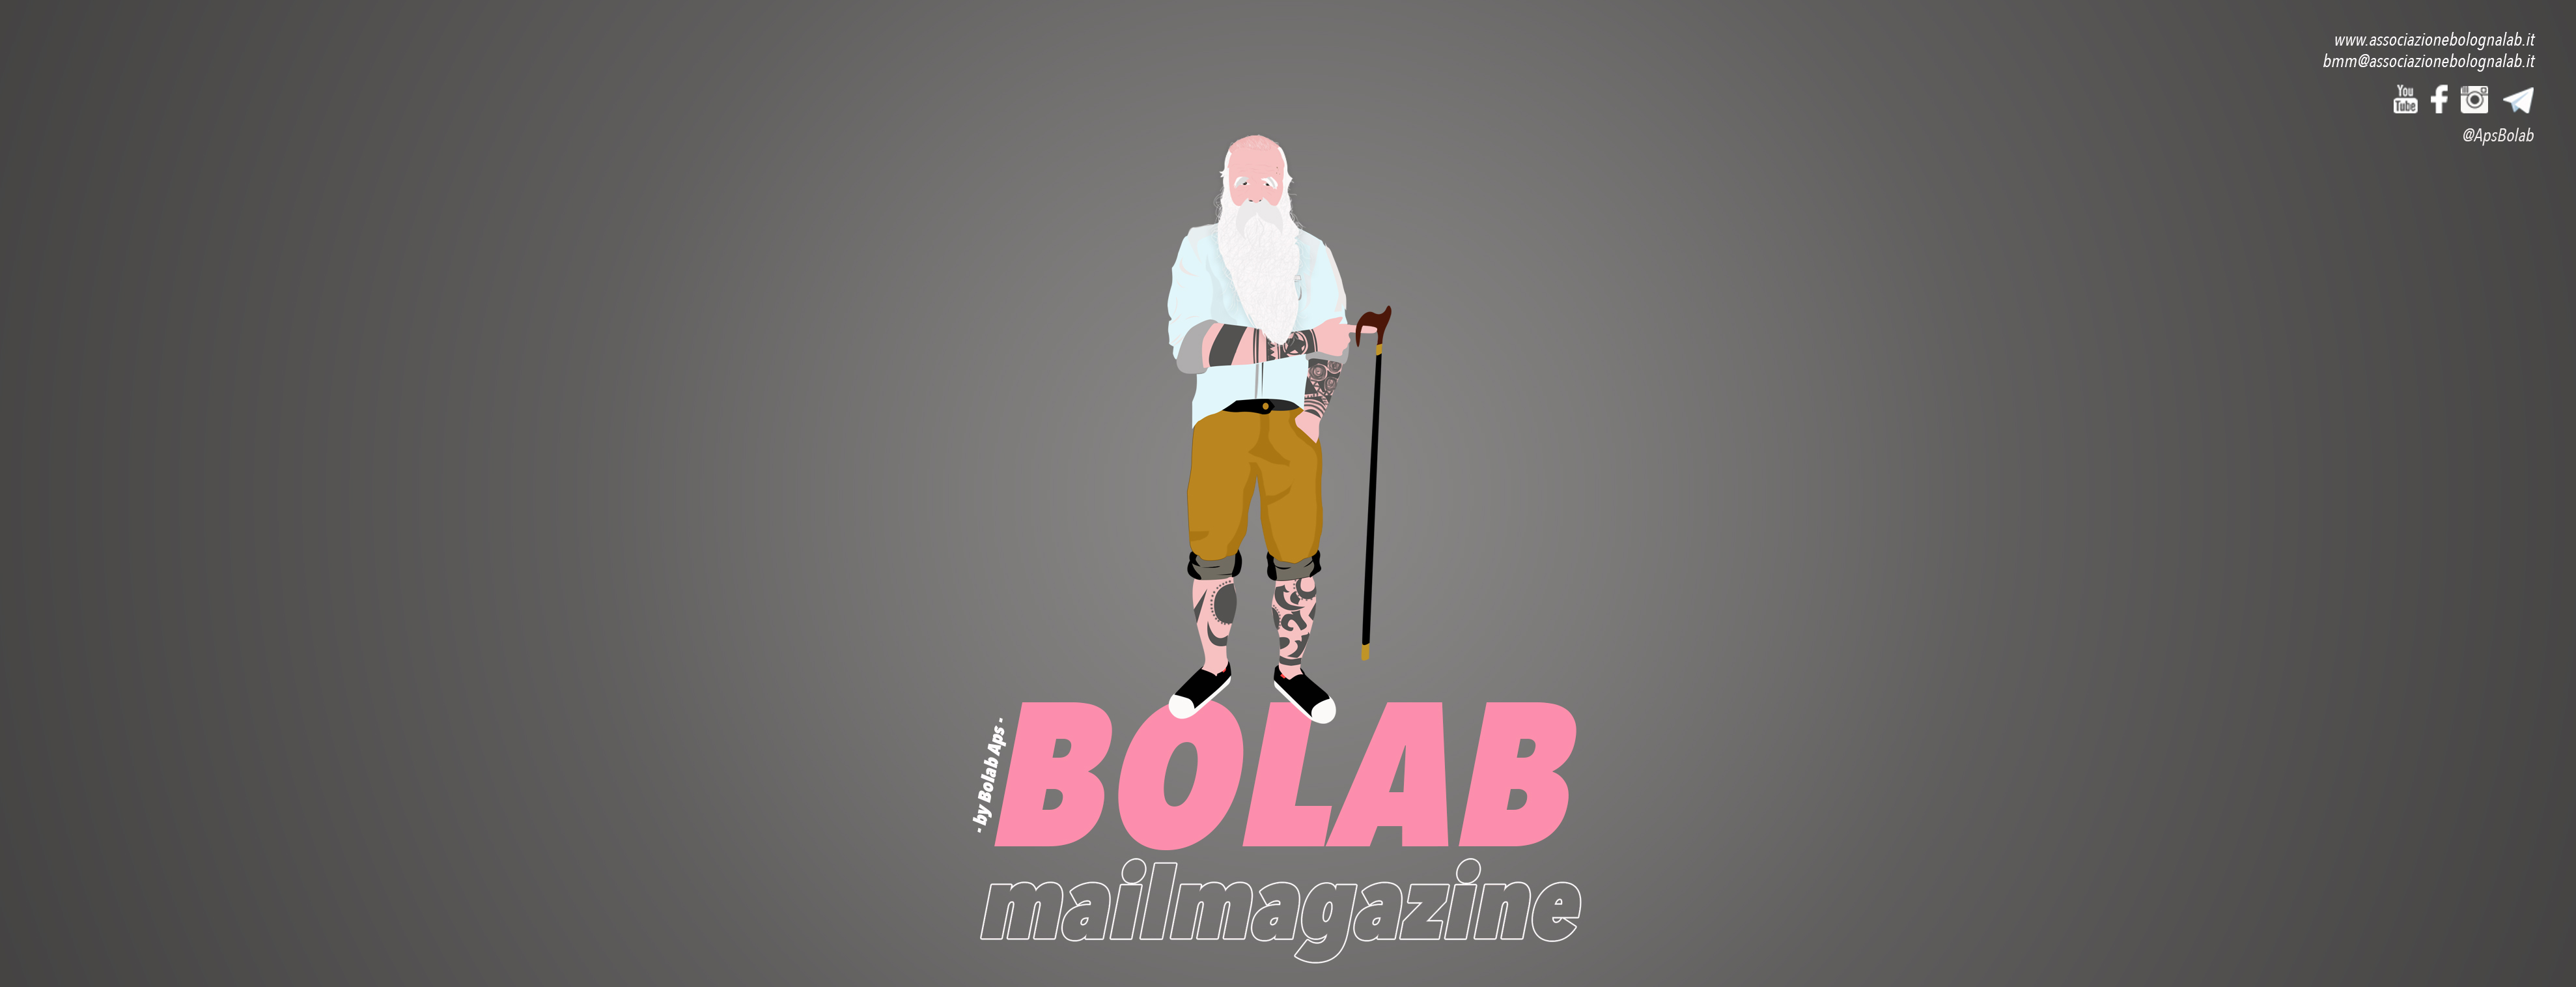 Bolab Mail Magazine by Bolab Aps